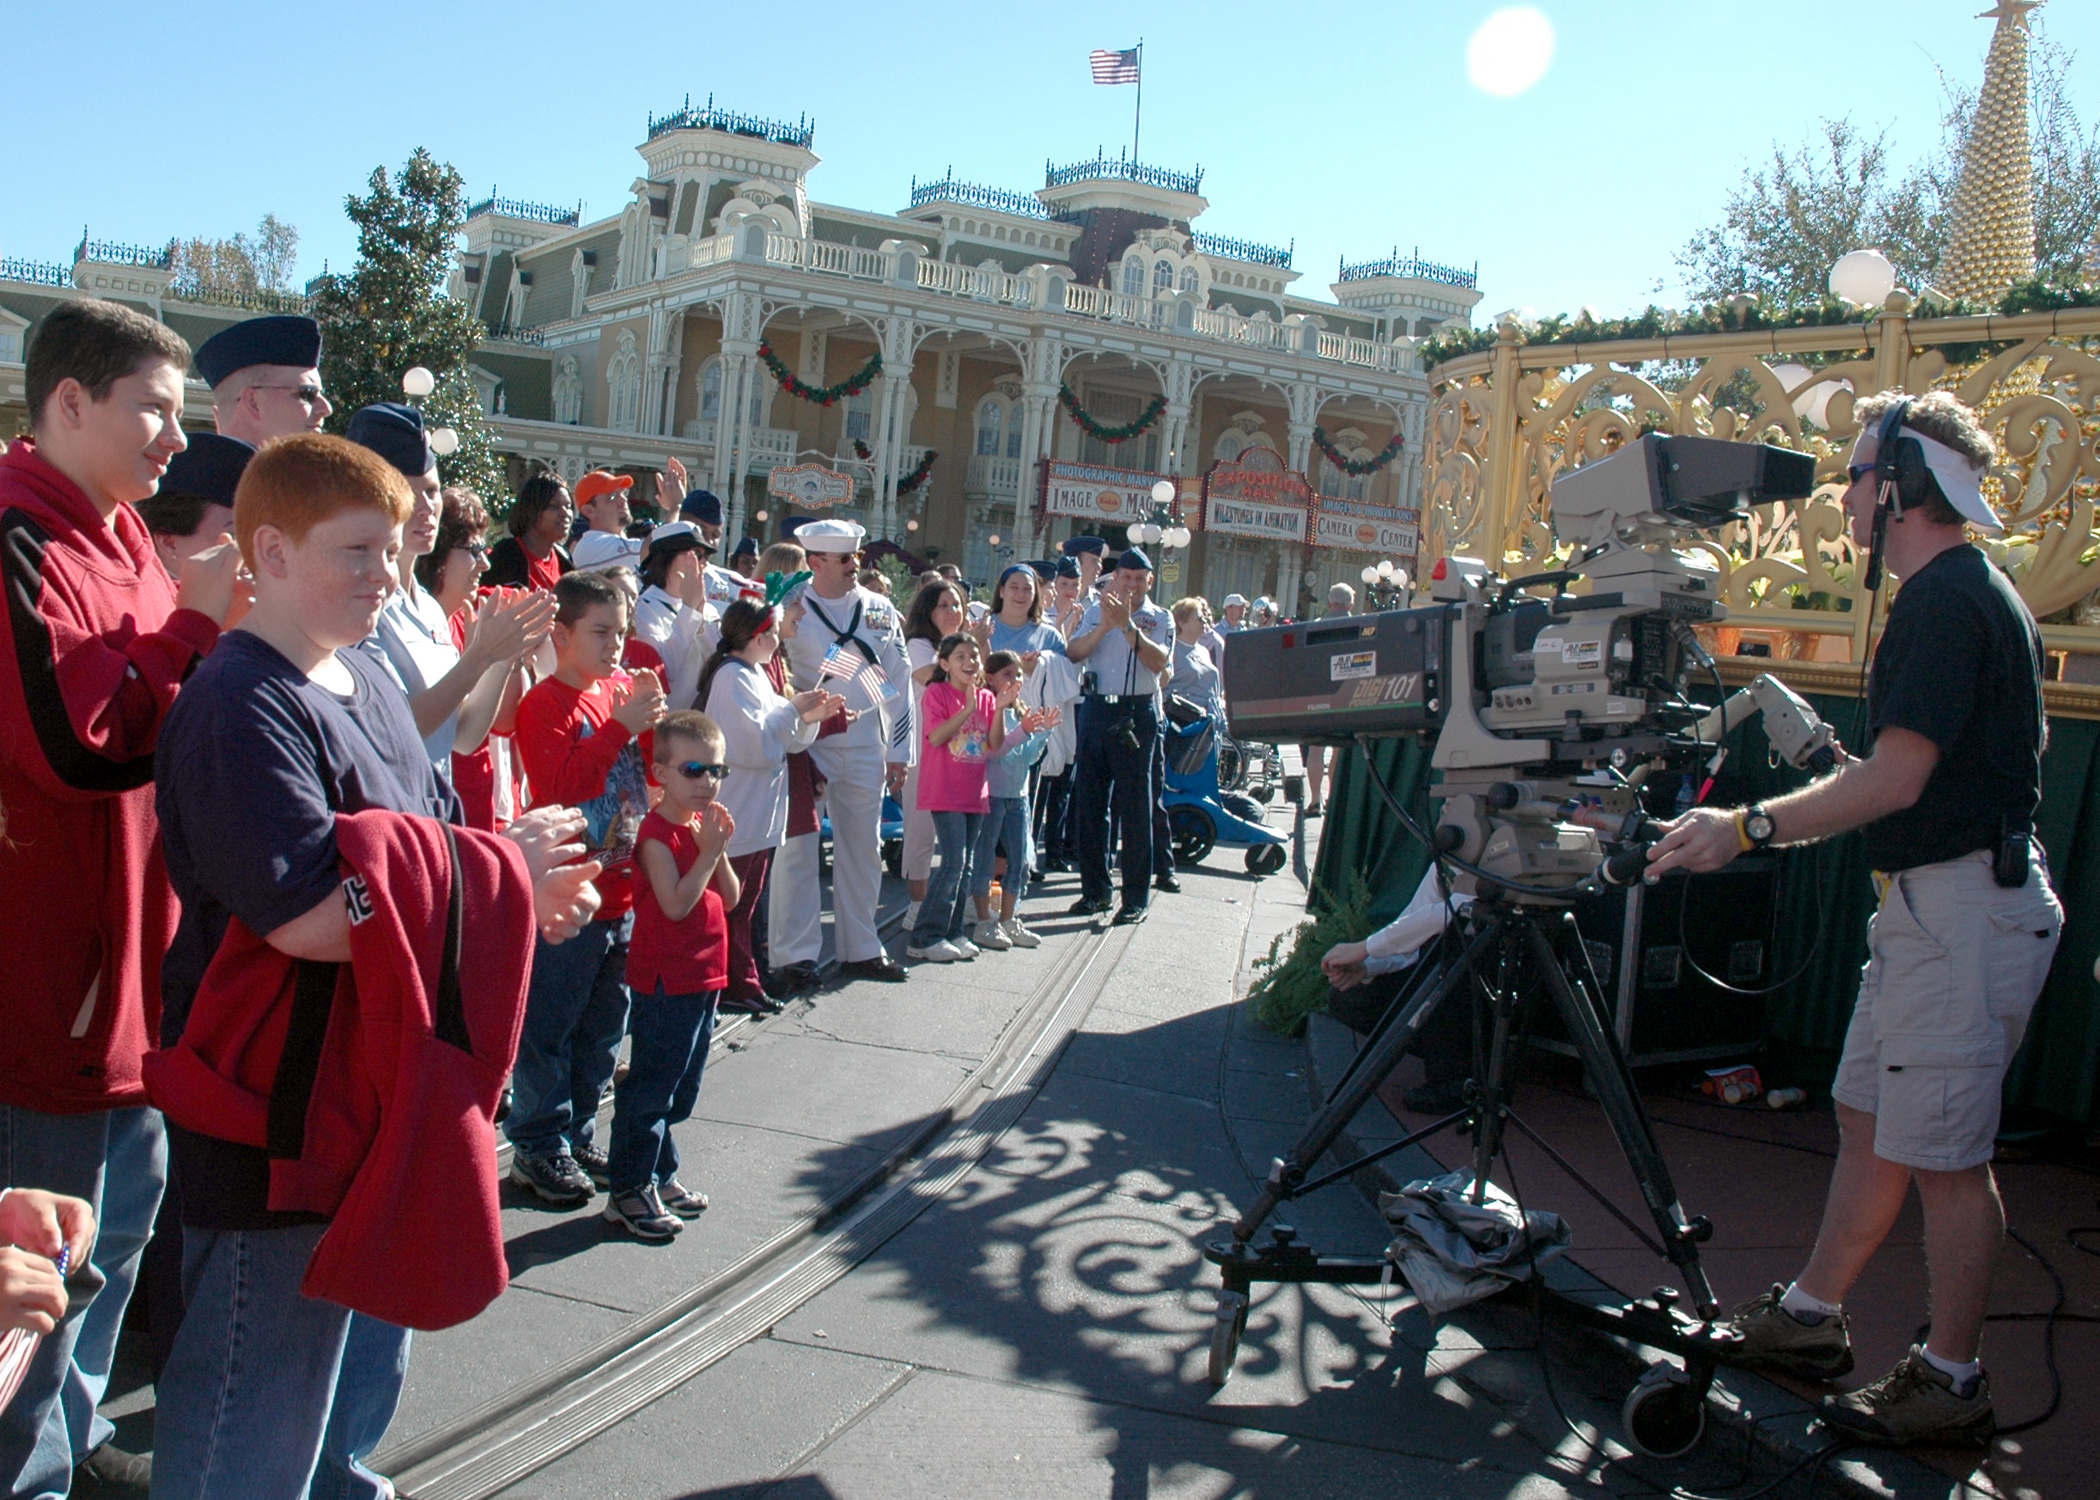 fileus navy 051204 n 8102j 004 members of the armed forces and their families participate in the taping of the 2005 walt disney world christmas day